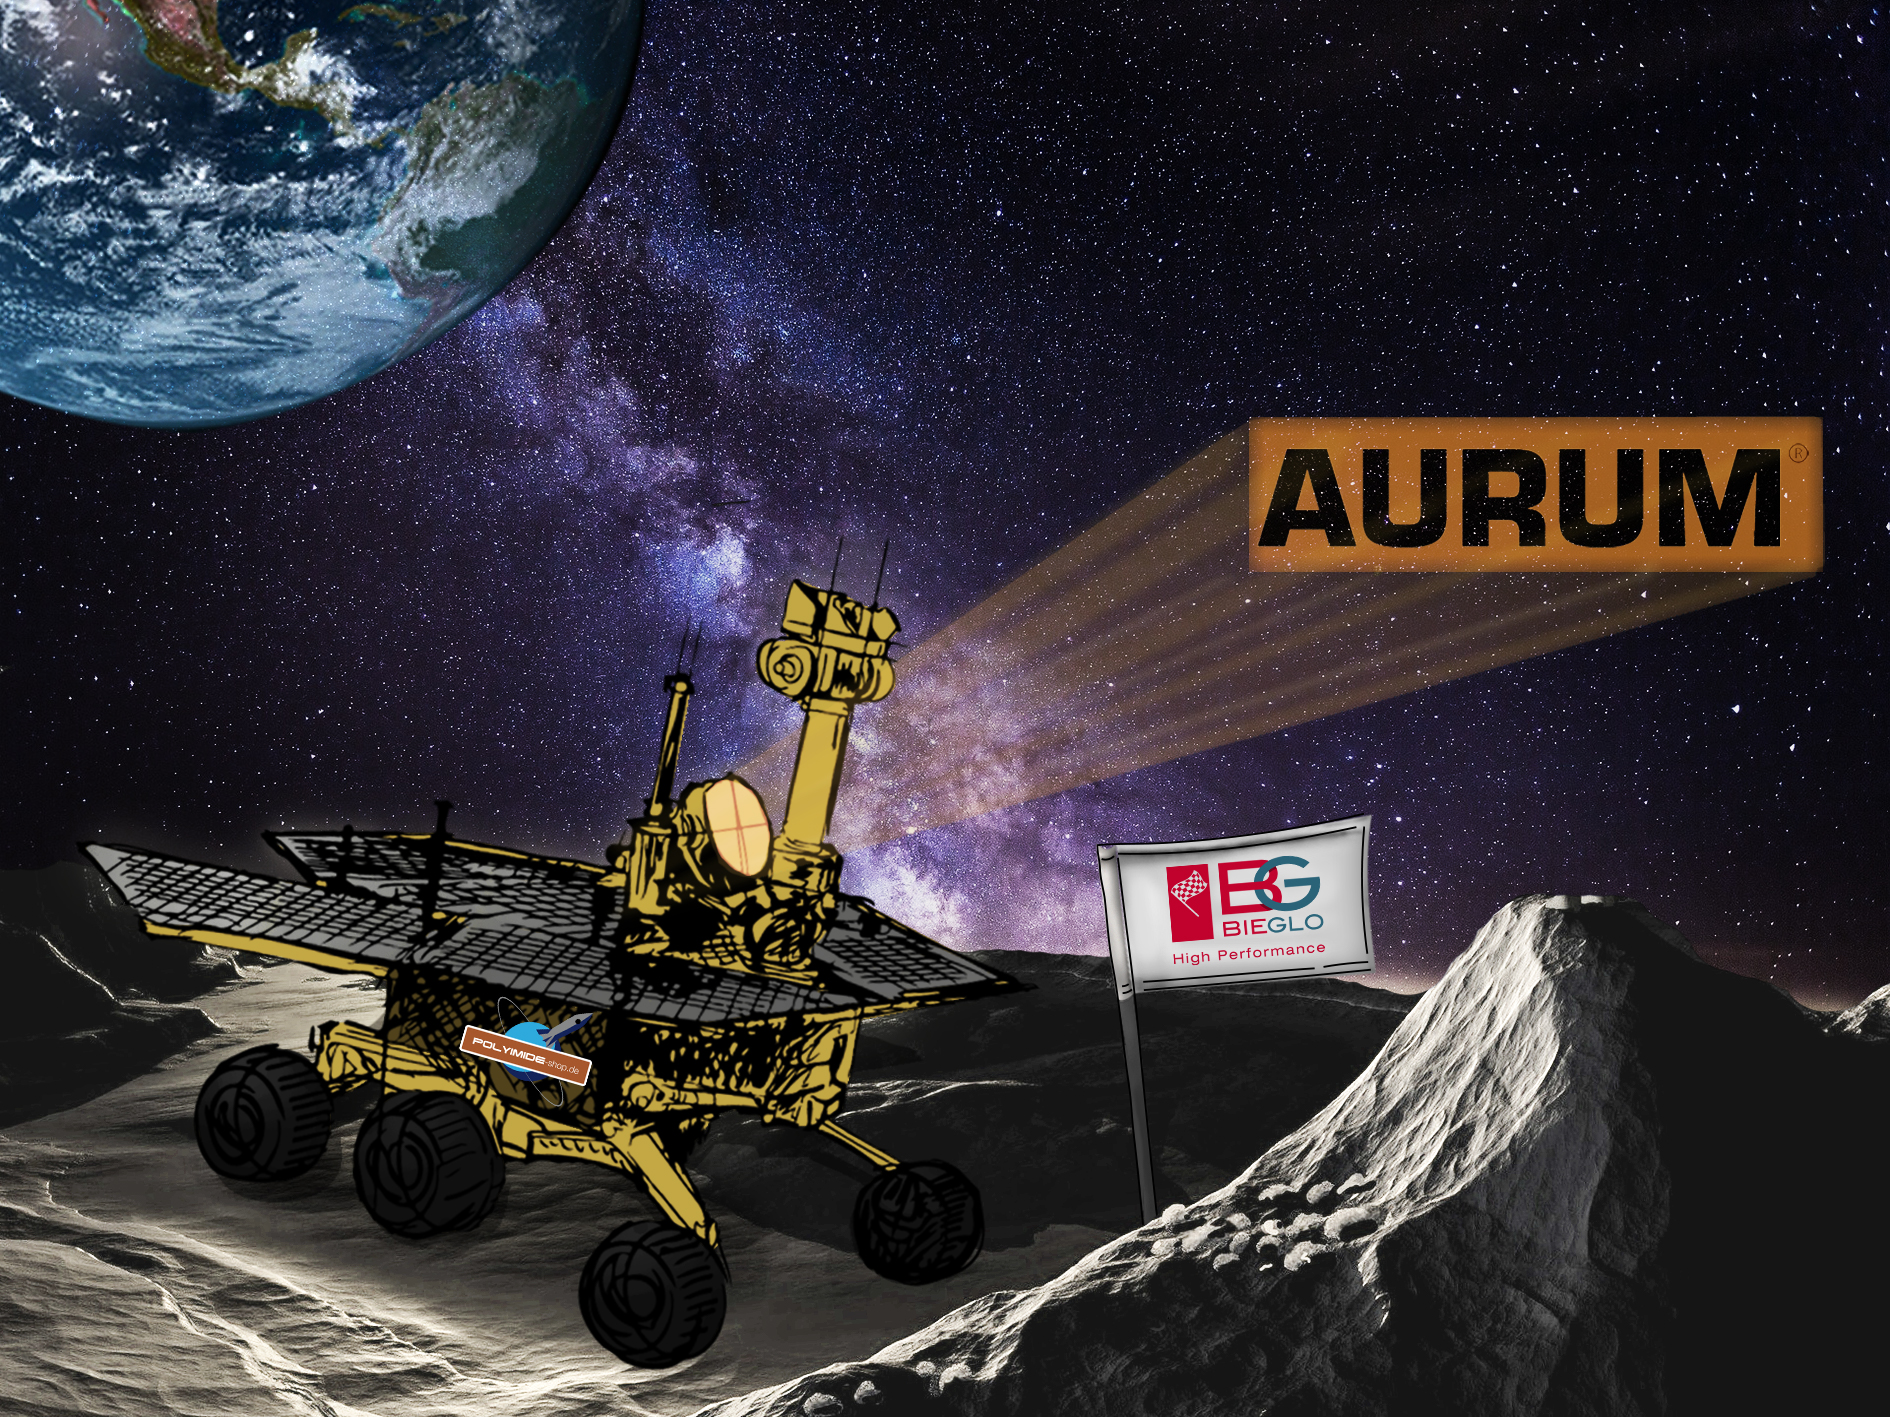 AURUM thermoplastic polyimide space project